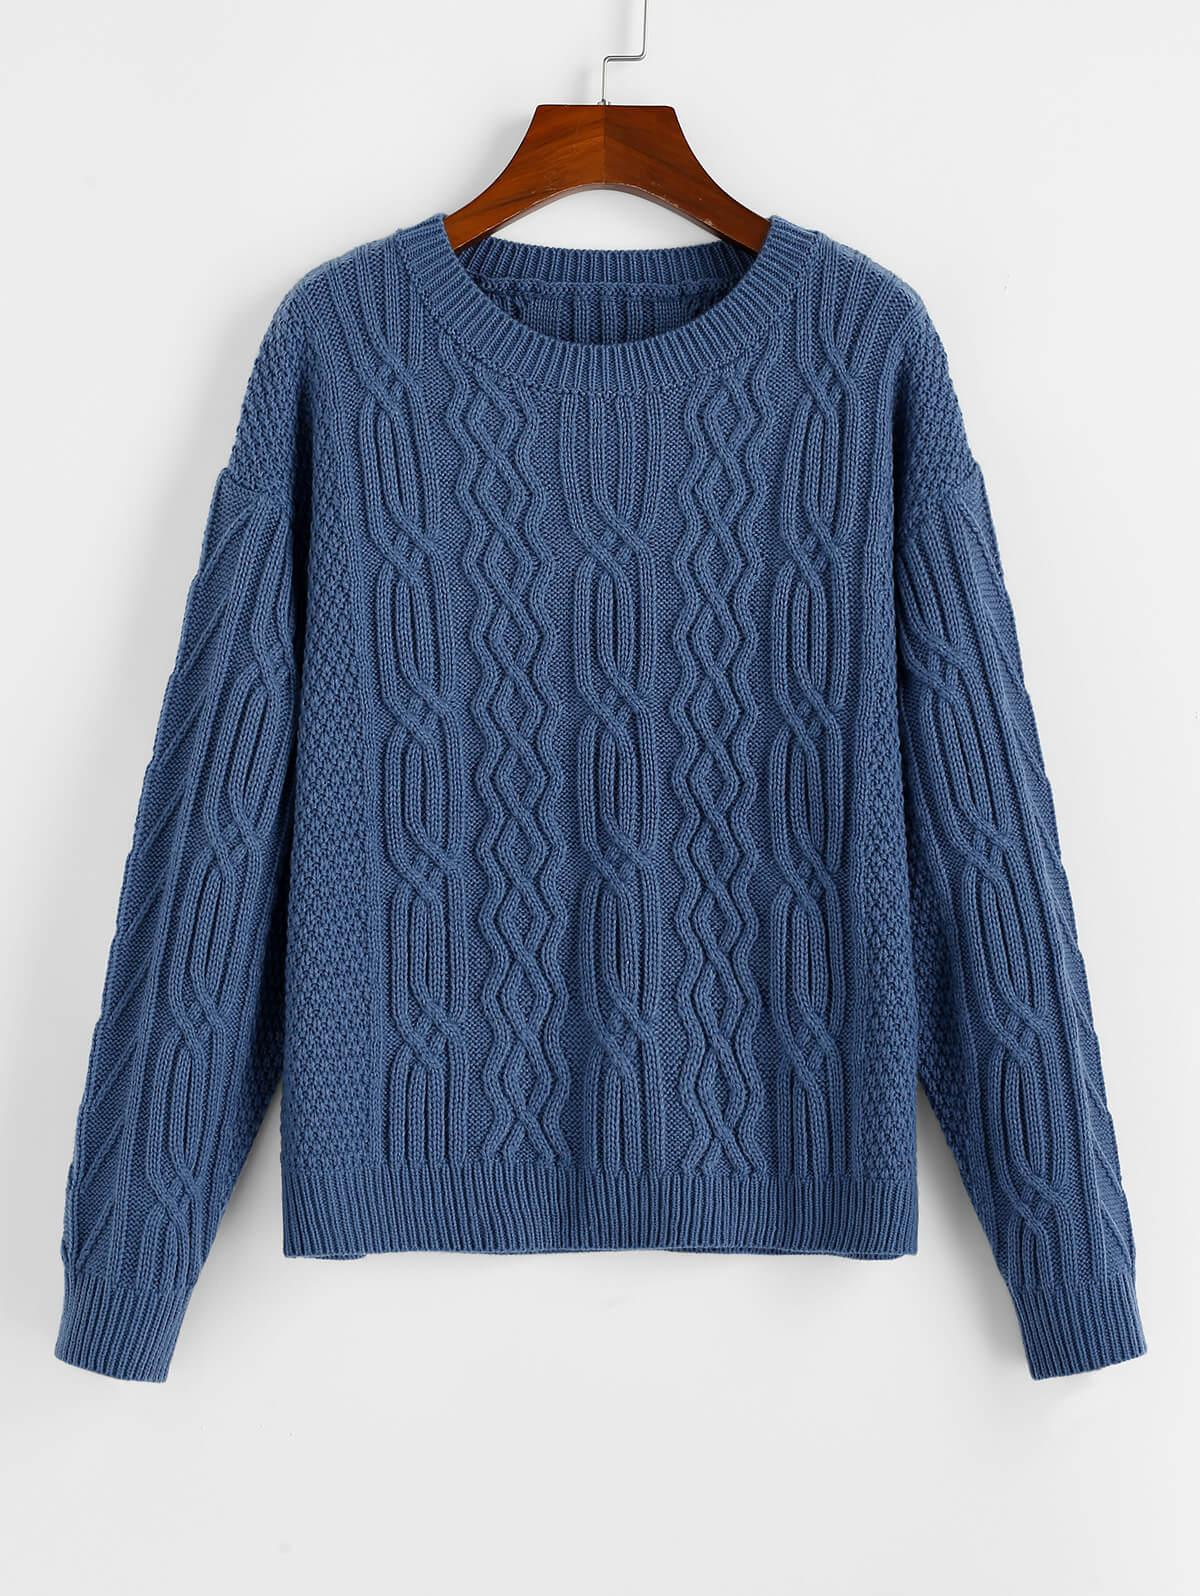 ZAFUL Drop Shoulder Plain Textured Sweater